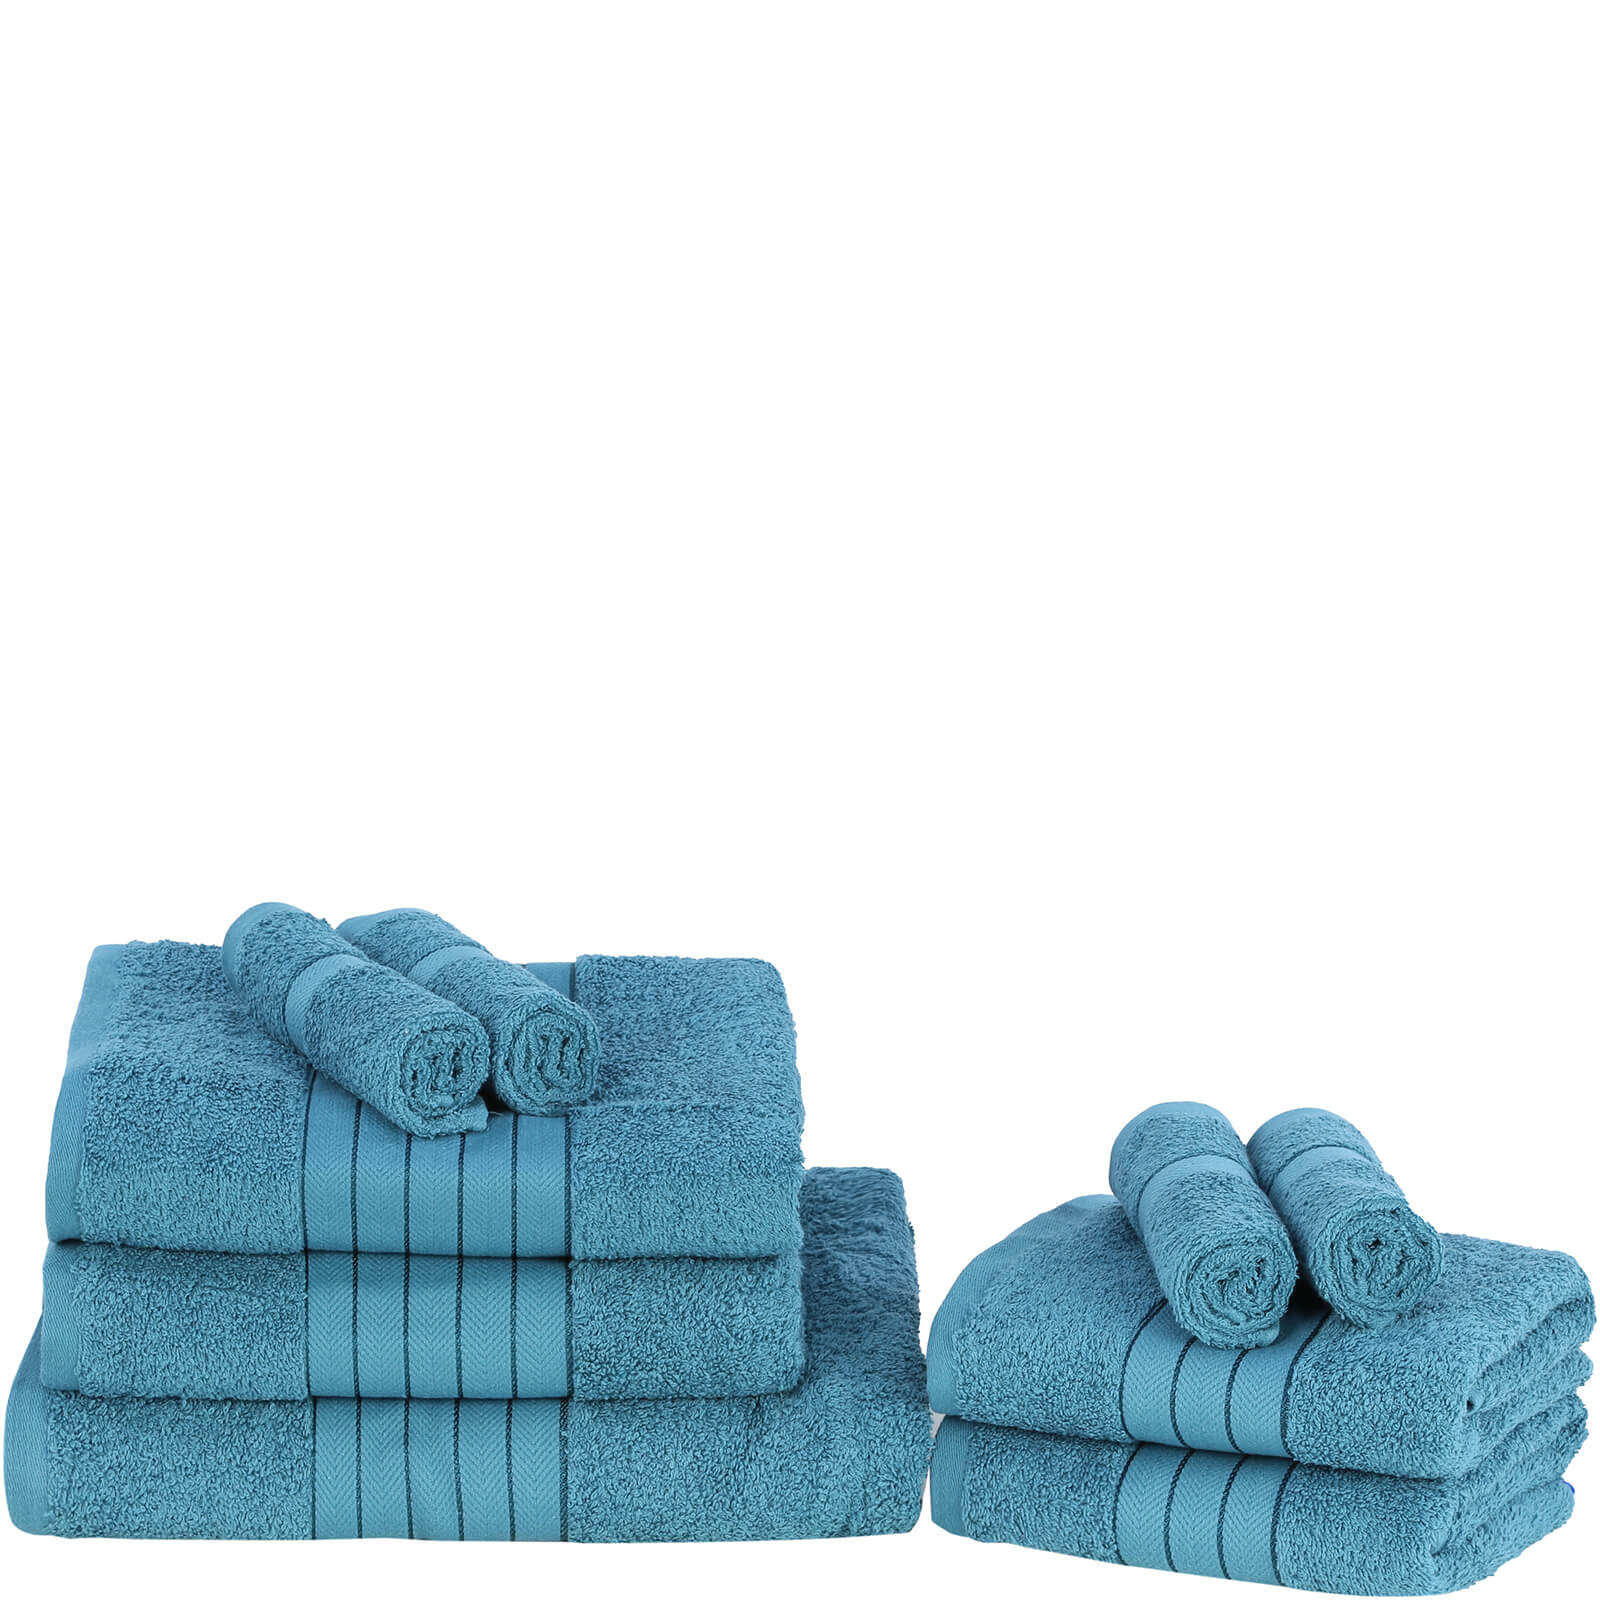 Highams 100% Egyptian Cotton 9 Piece Towel Bale (500 gsm) - Teal